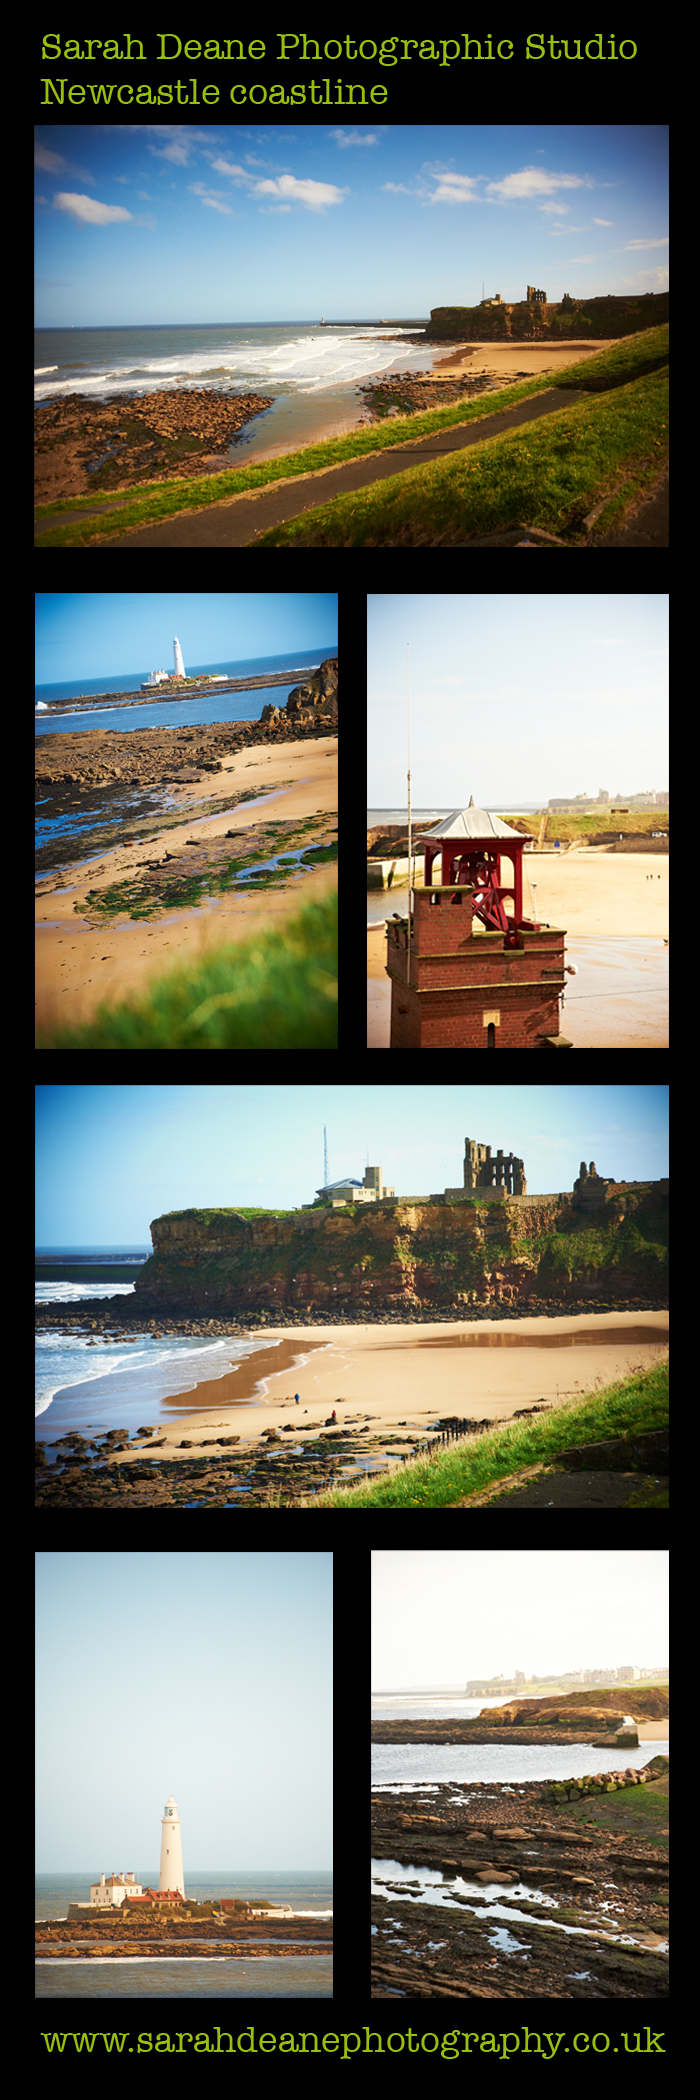 newcastle coastline, whitley bay, cullercoats, tynemout